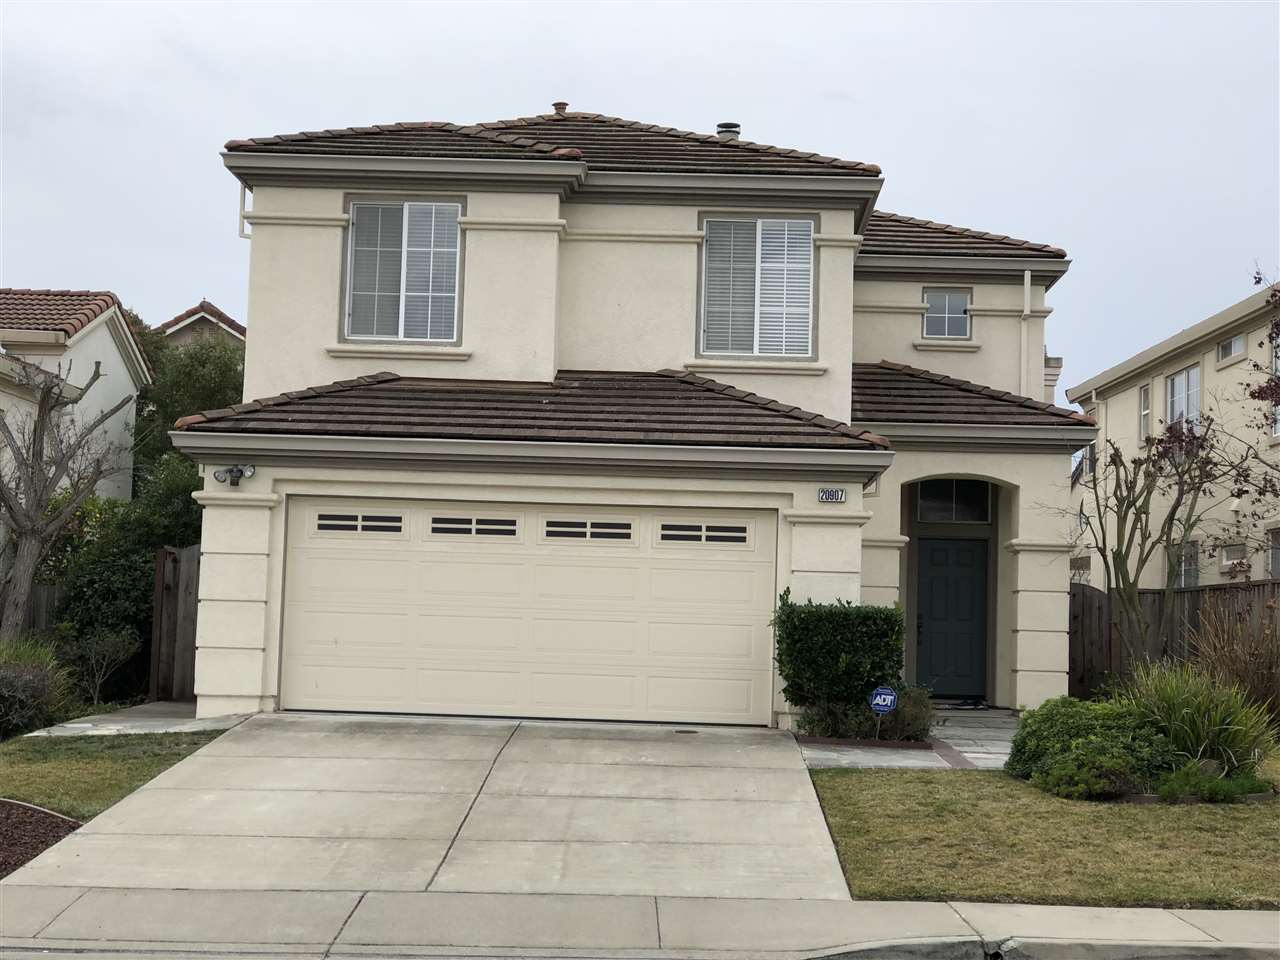 Single Family Home for Sale at 20907 Sherman Drive 20907 Sherman Drive Castro Valley, California 94552 United States